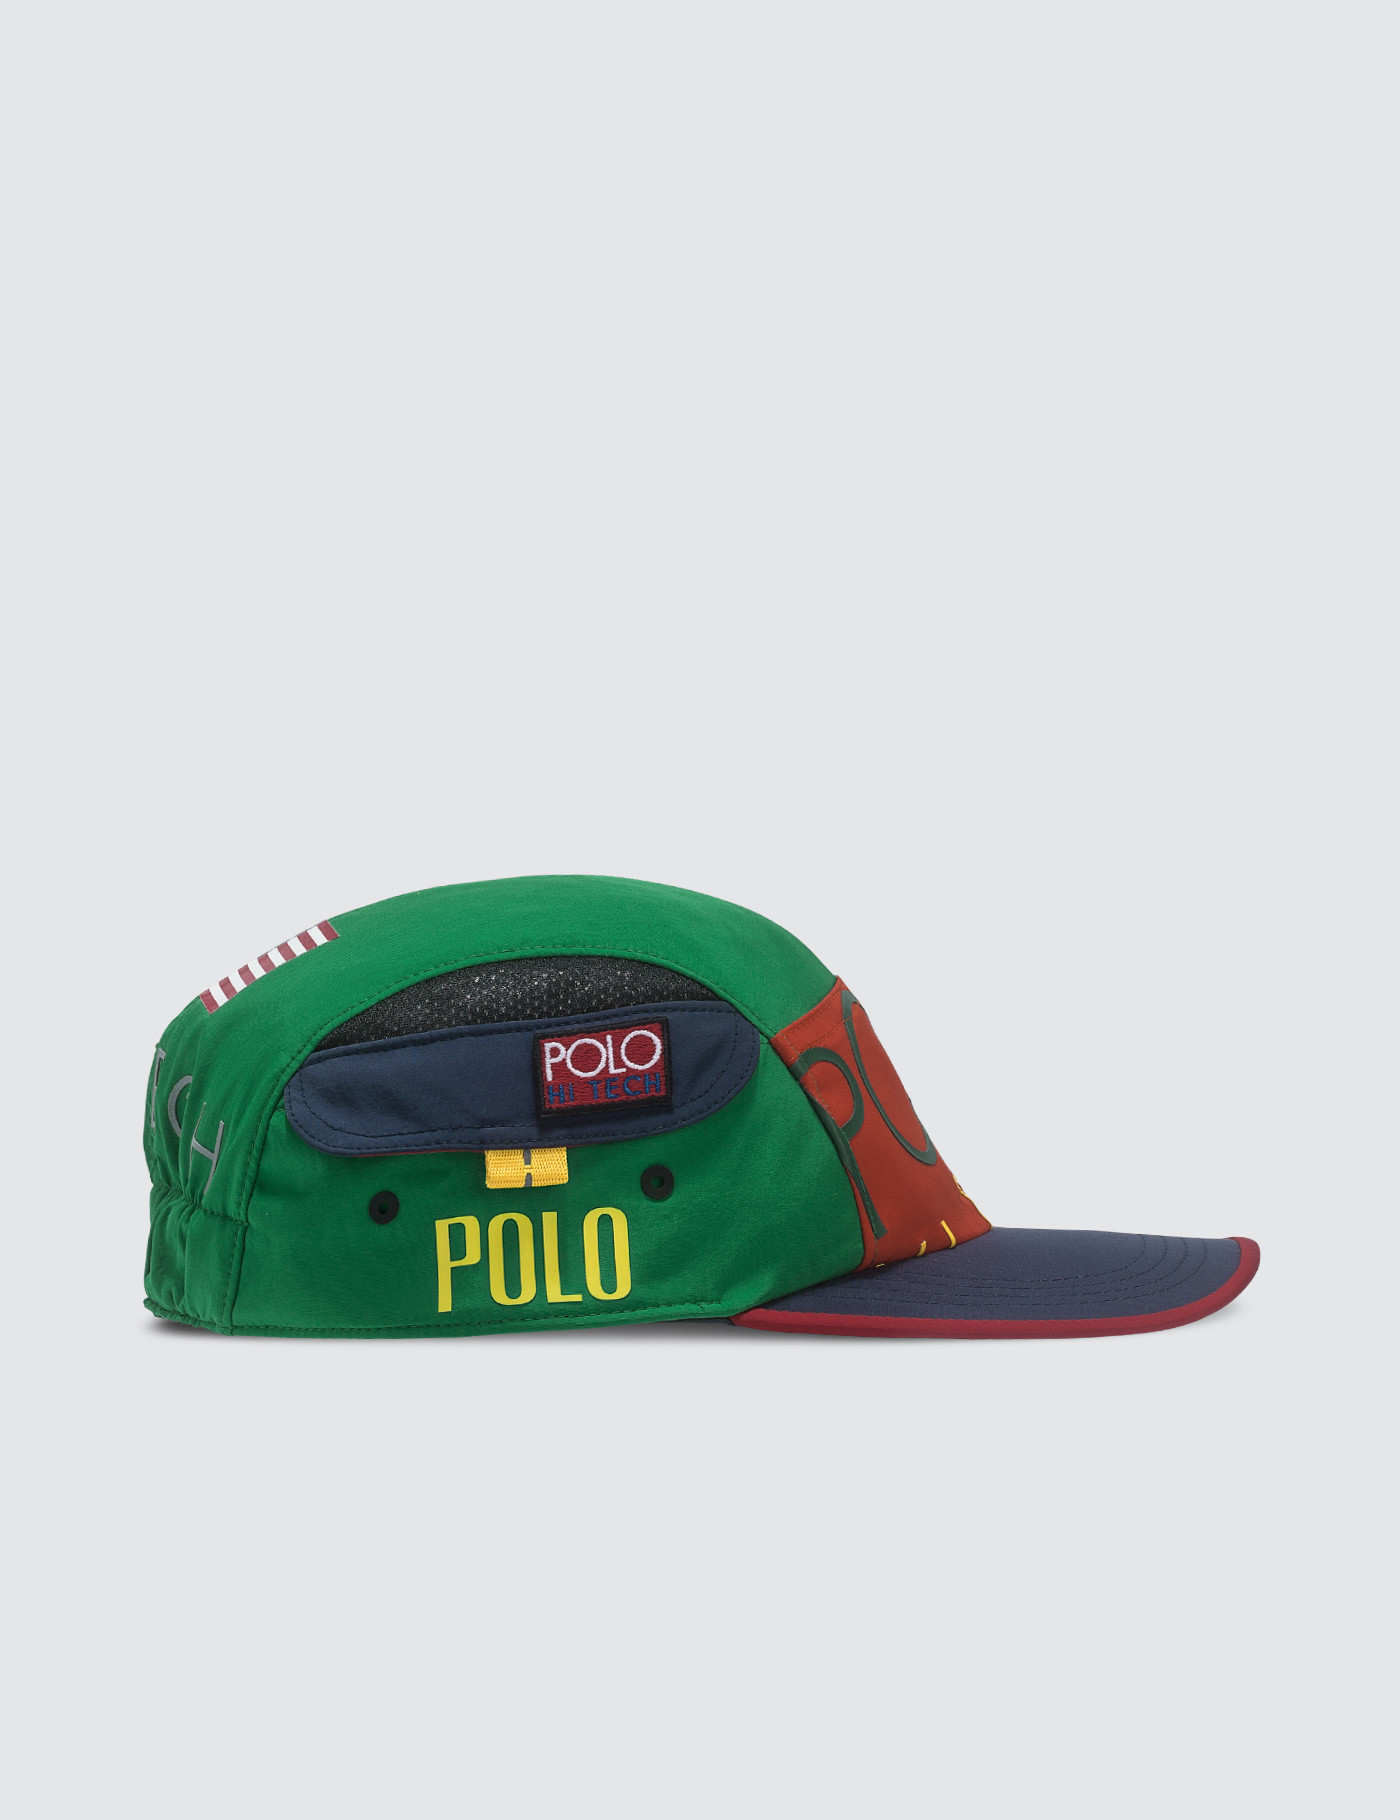 Hi Tech 5 Panel Cap, Polo Ralph Lauren